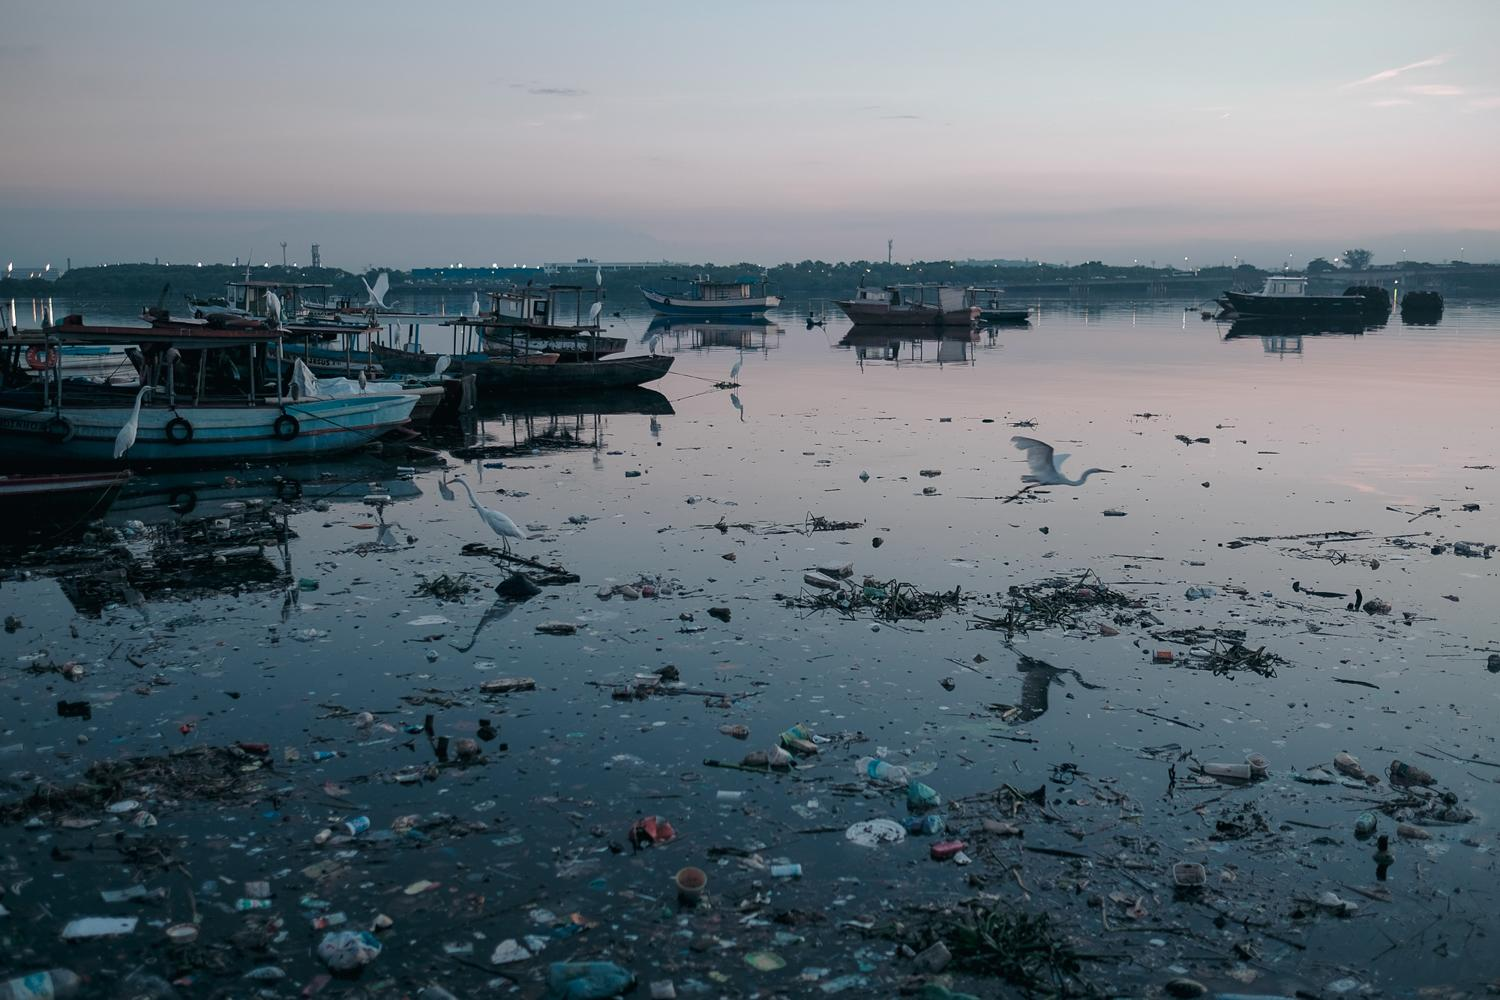 The colony of artesanal fishermen Z-11 sits on the edge of the Guanabara Bay facing Governor's island and Rio de Janeiro's international airport. It is currently the most polluted part of the bay.